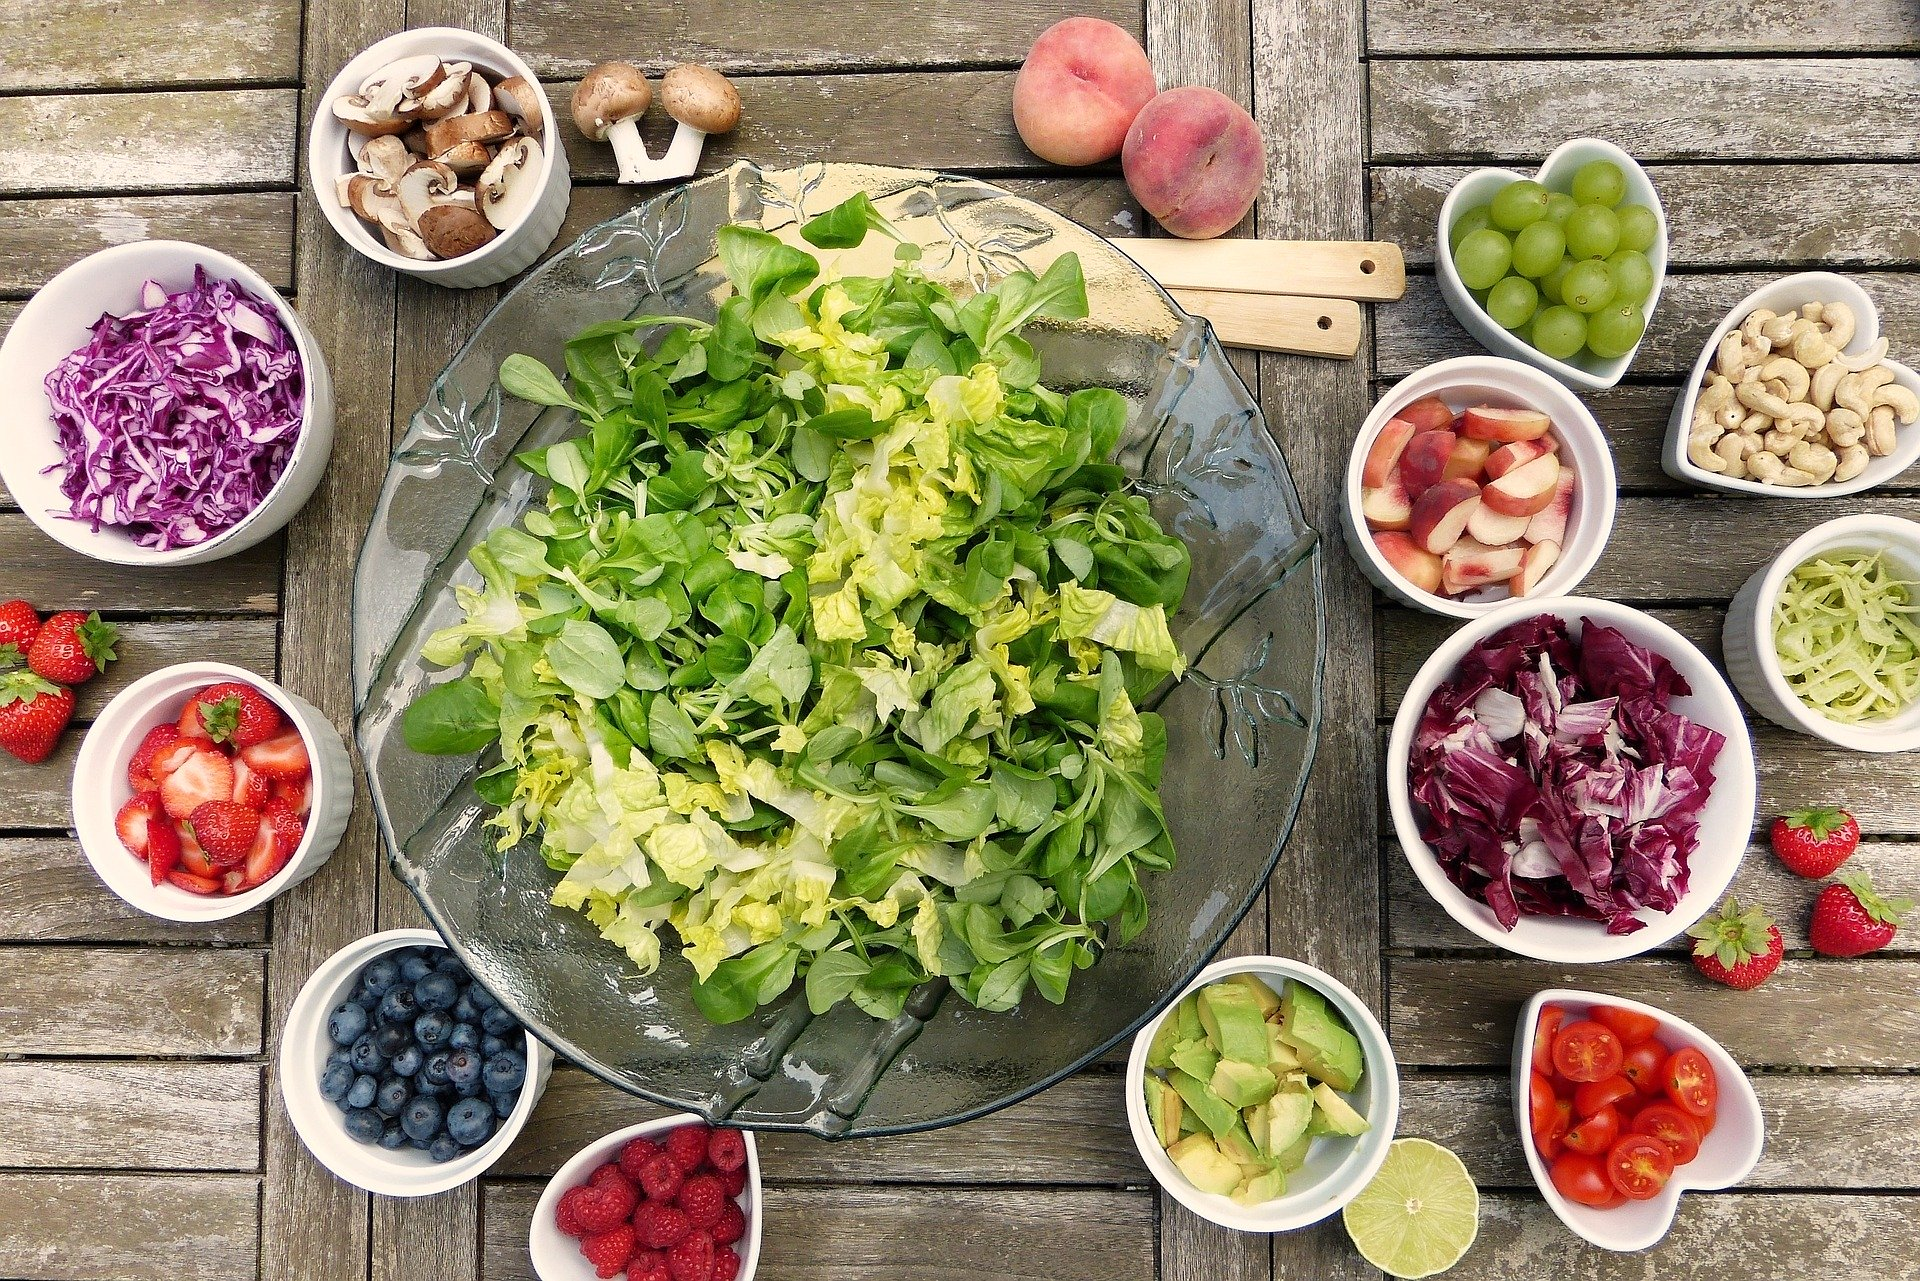 salad Image by silviarita from Pixabay